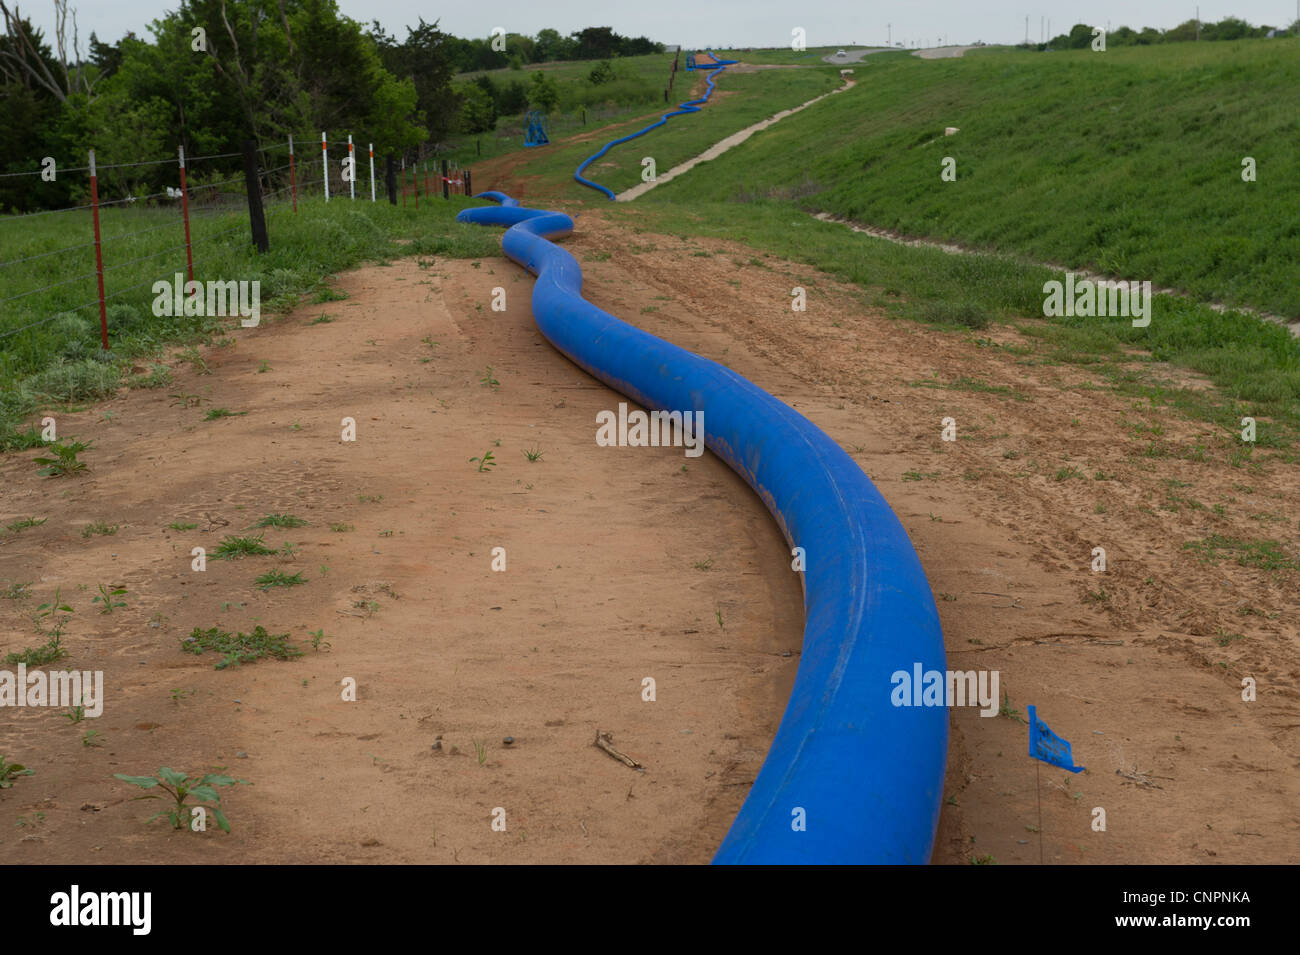 A large hose used to pump water to a natural gas well fracking site from a local lake - Stock Image